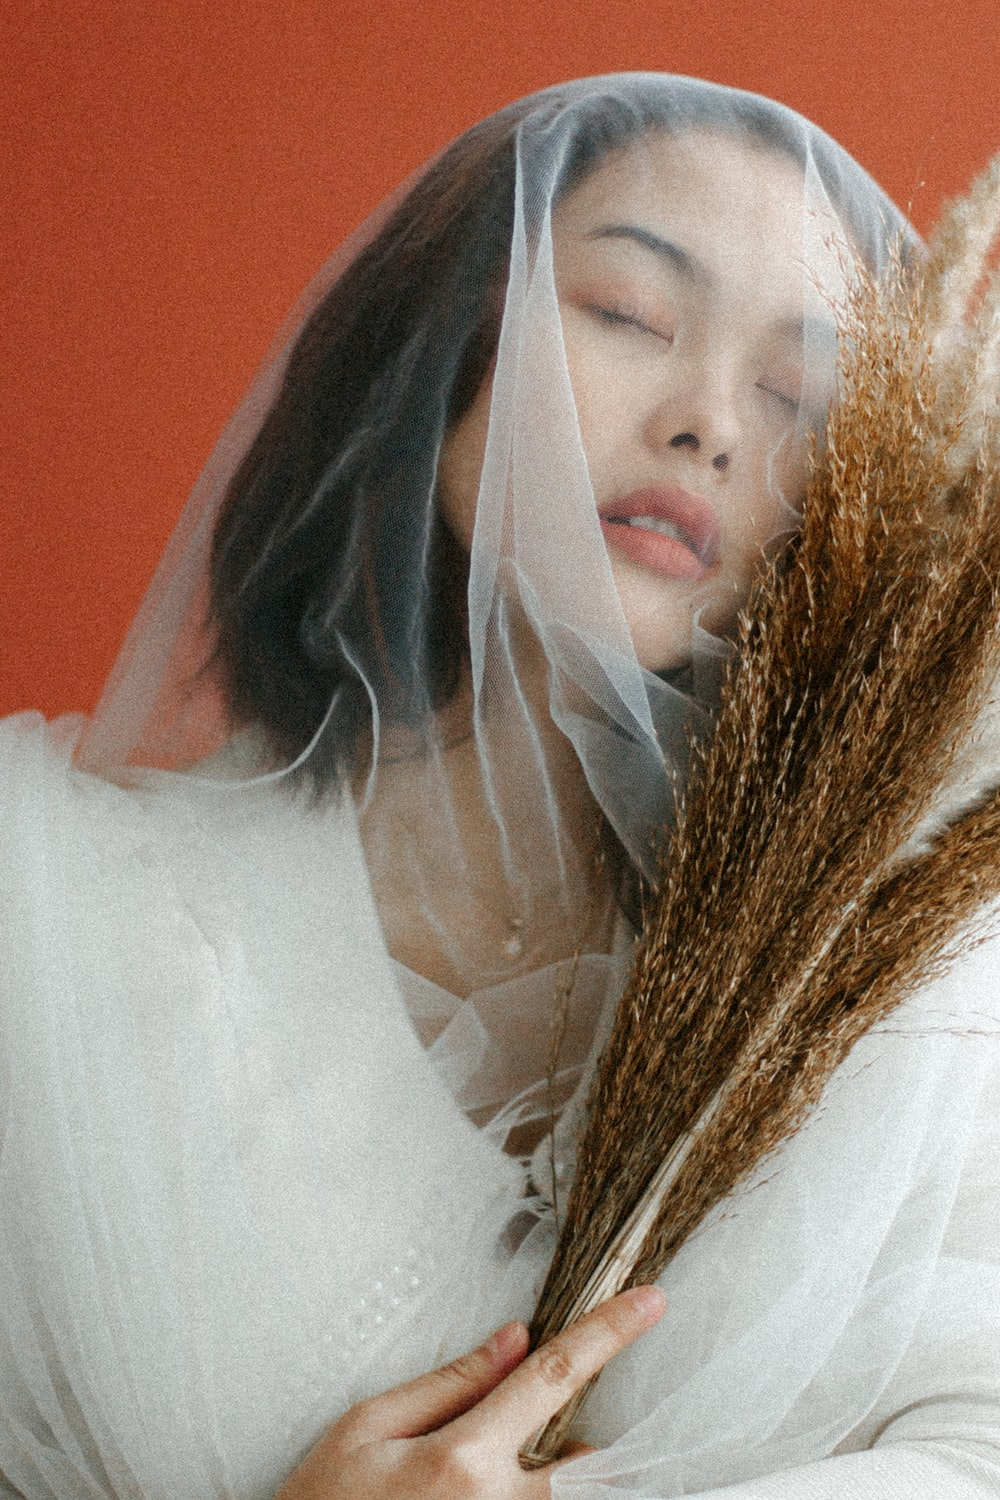 woman in white dress covering face with white textile